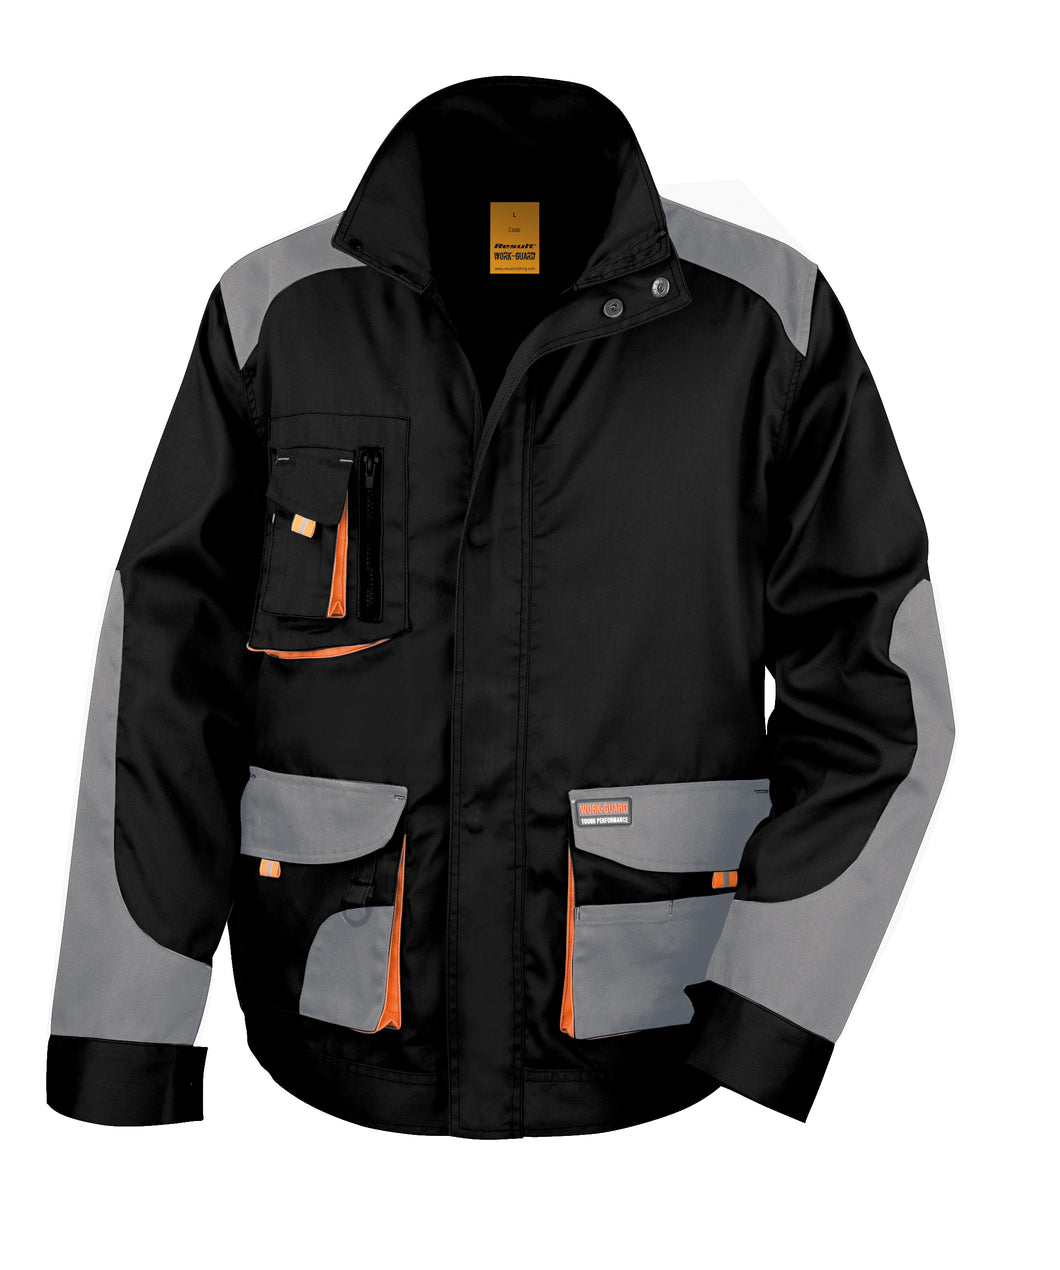 WORK-GUARD Lite Jacket with Logo